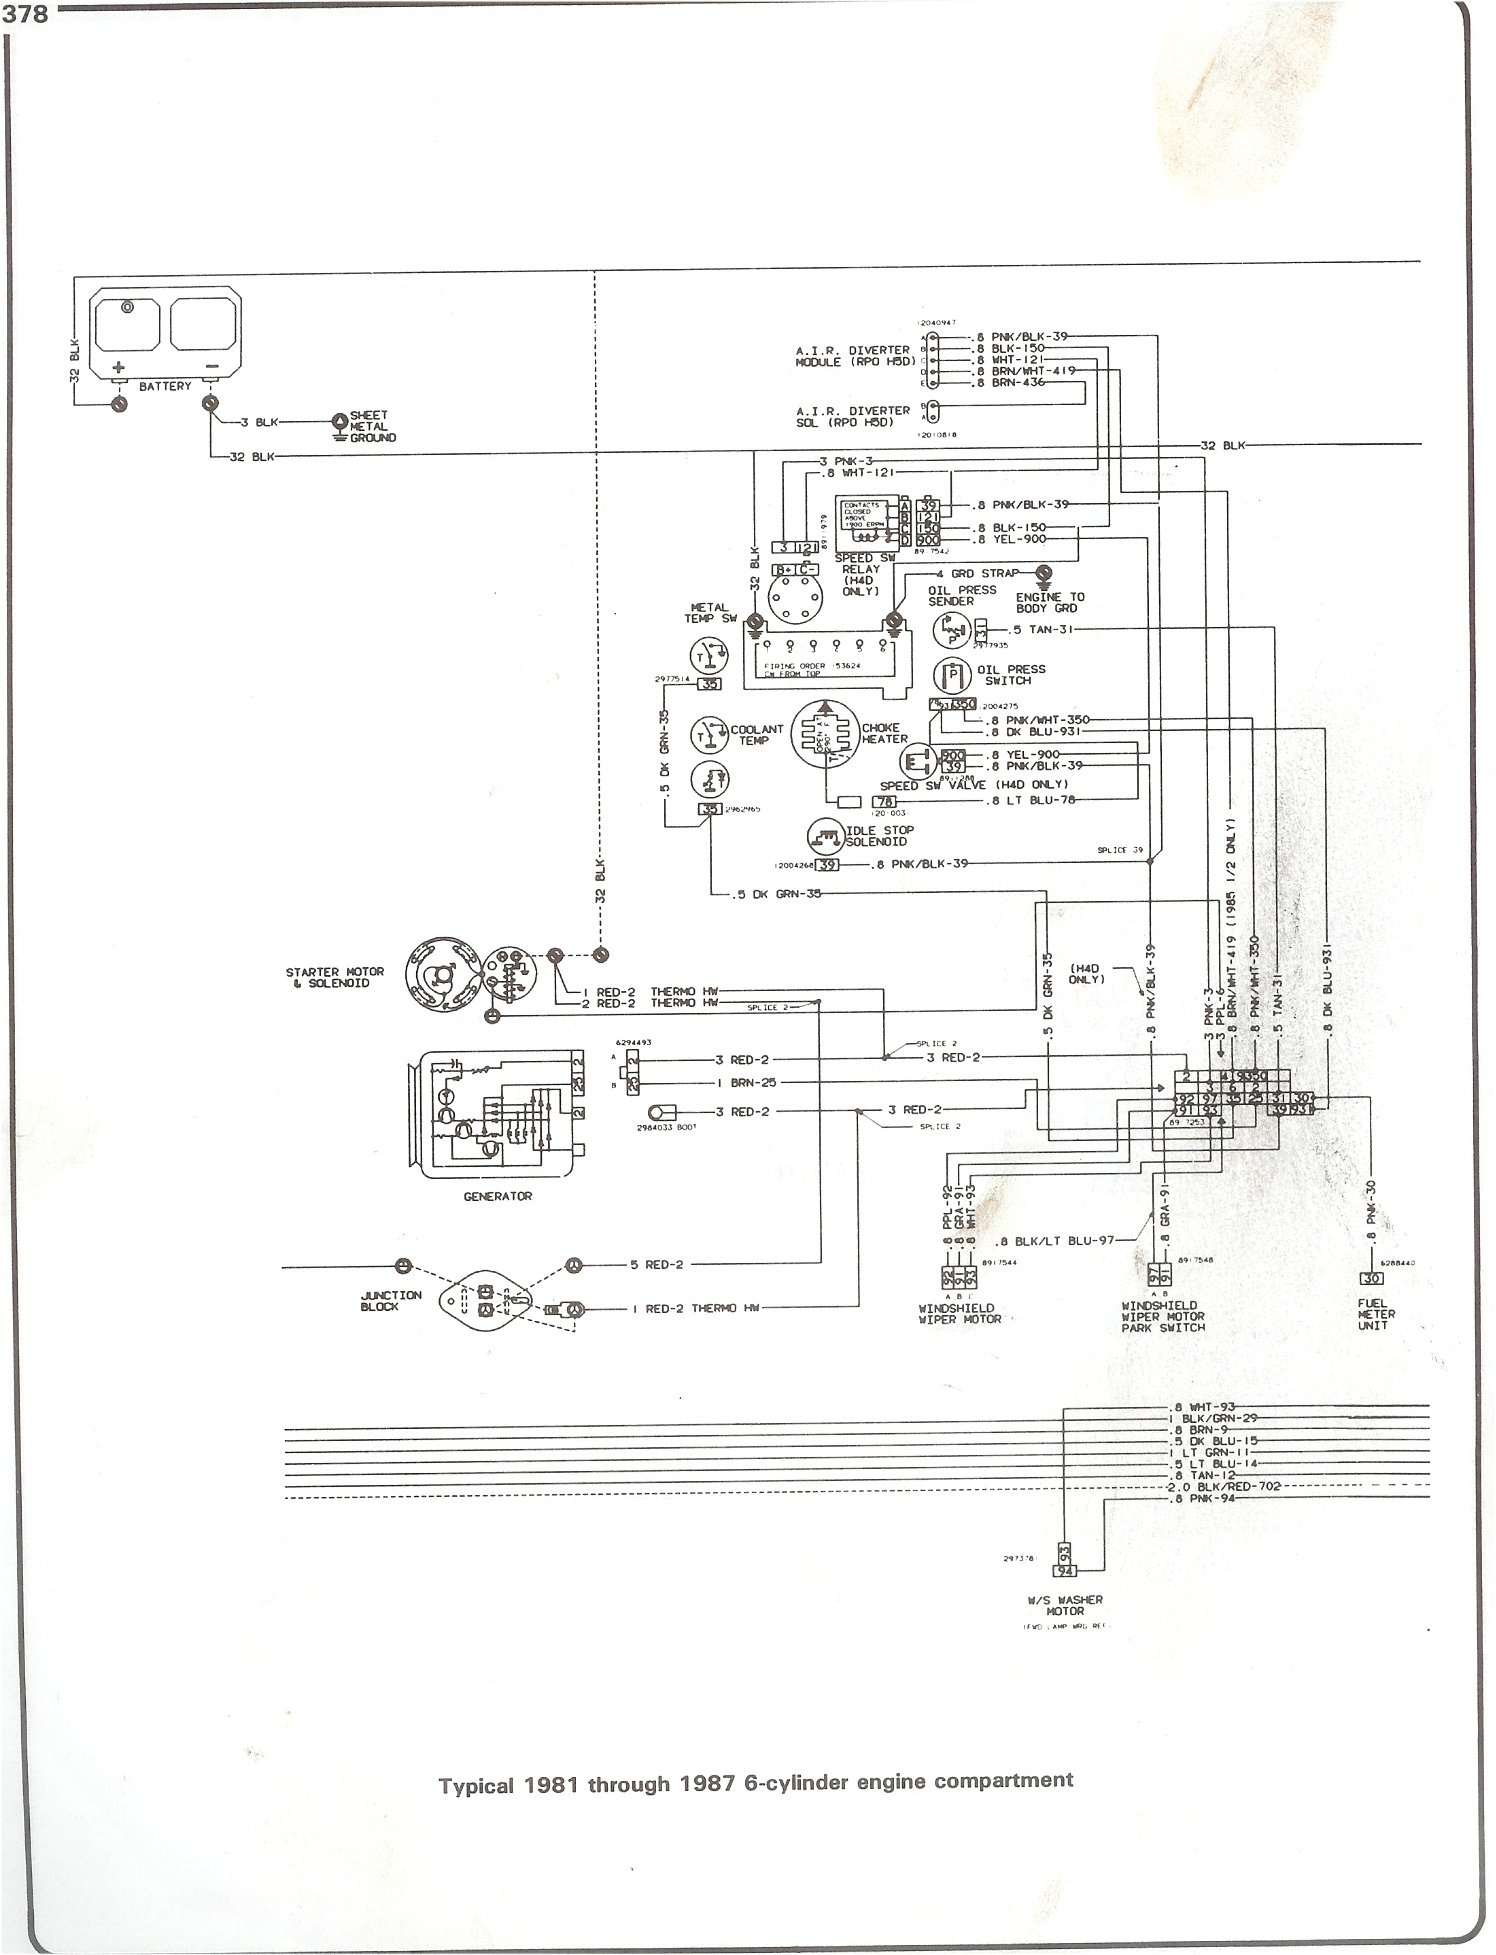 1986 Chevy Truck Fuel Gauge Wiring Diagrams Switches Are Operated By Controllers Connected To The Switch By3wire 87 Van Diagram Schematics Rh Ksefanzone Com 86 Not Working